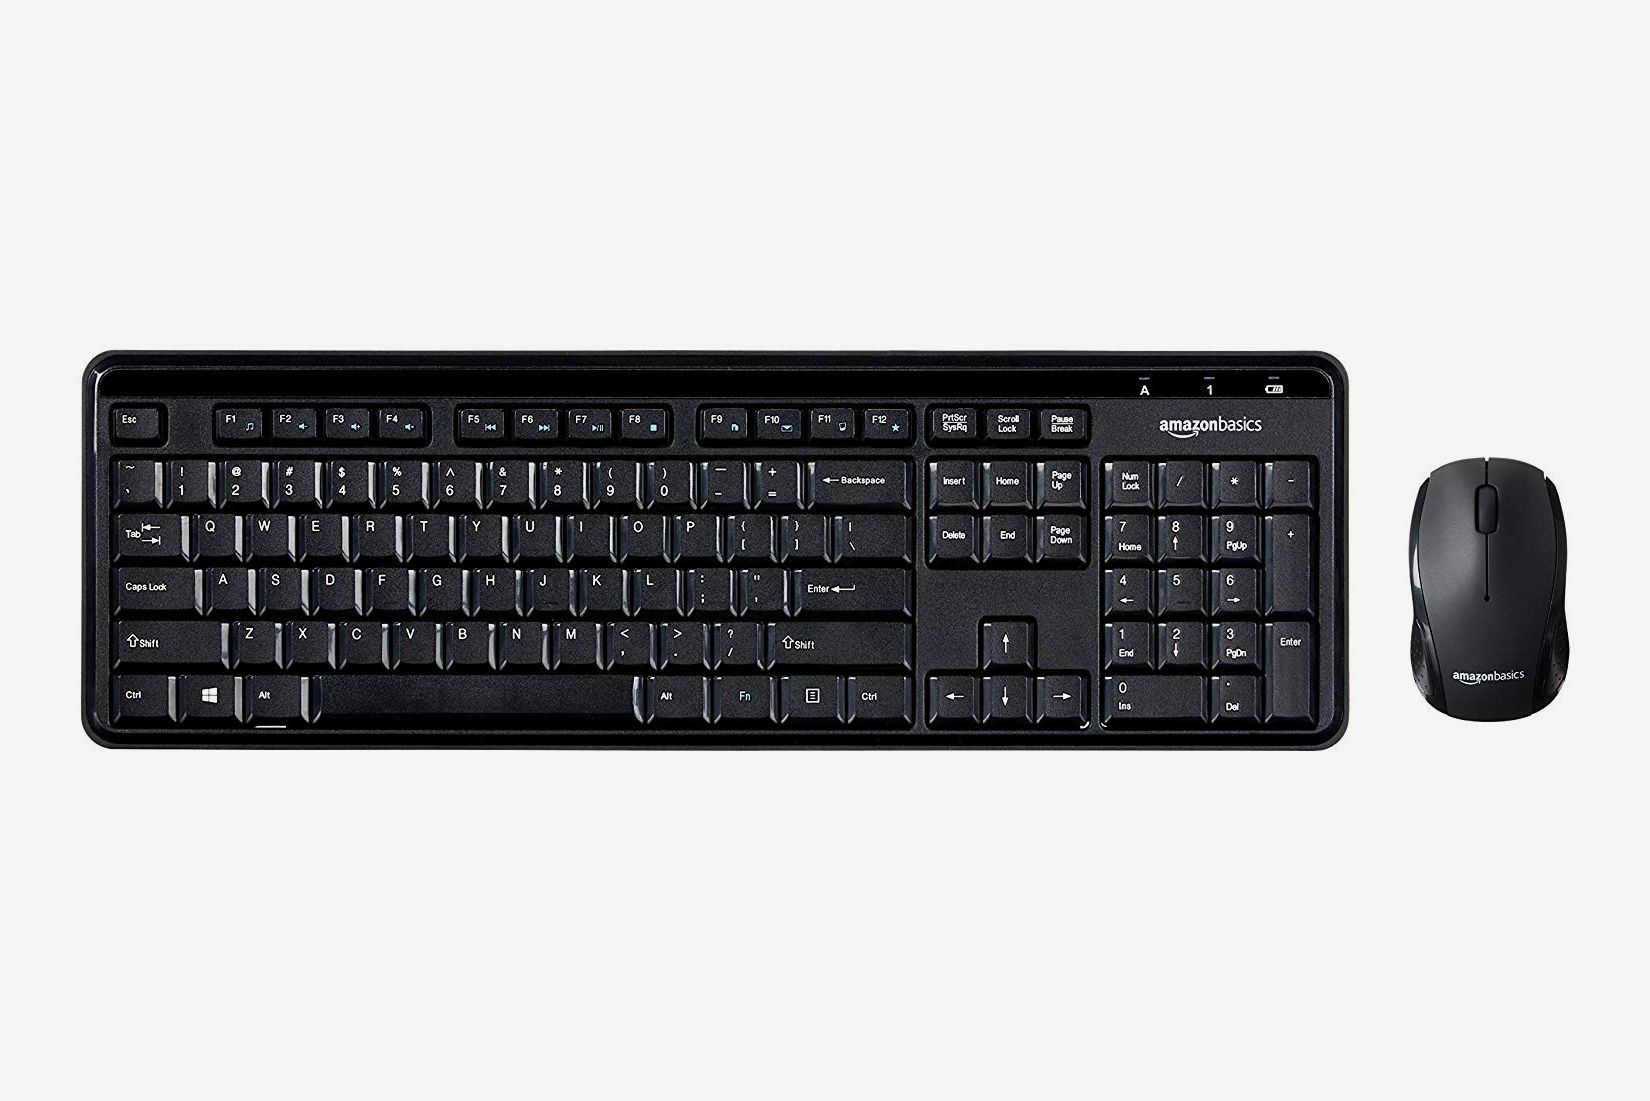 a2462e540f8 AmazonBasics Wireless Computer Keyboard and Mouse Combo - Quiet and Compact